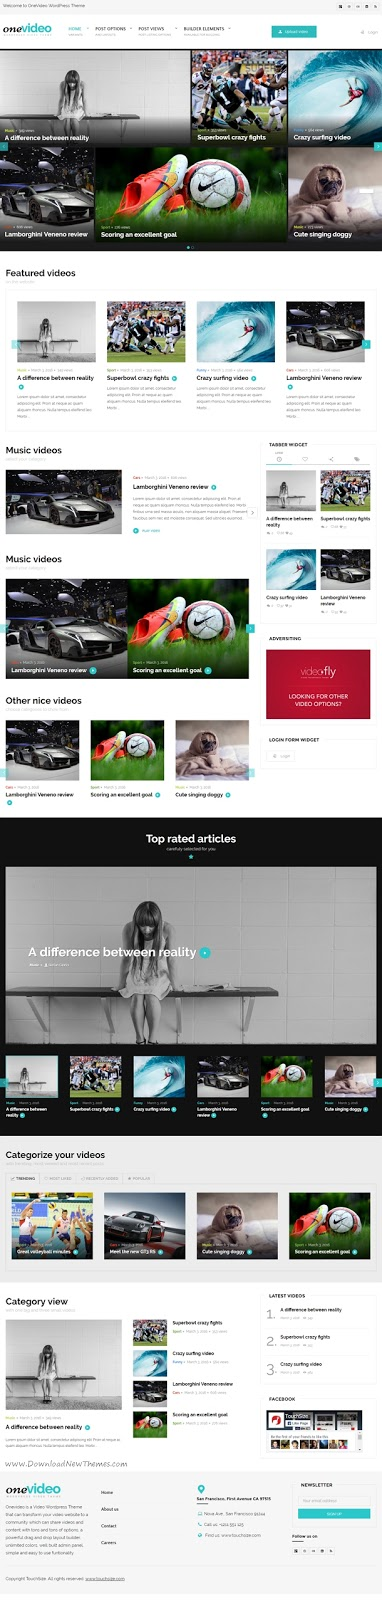 Best Video Community WordPress Theme